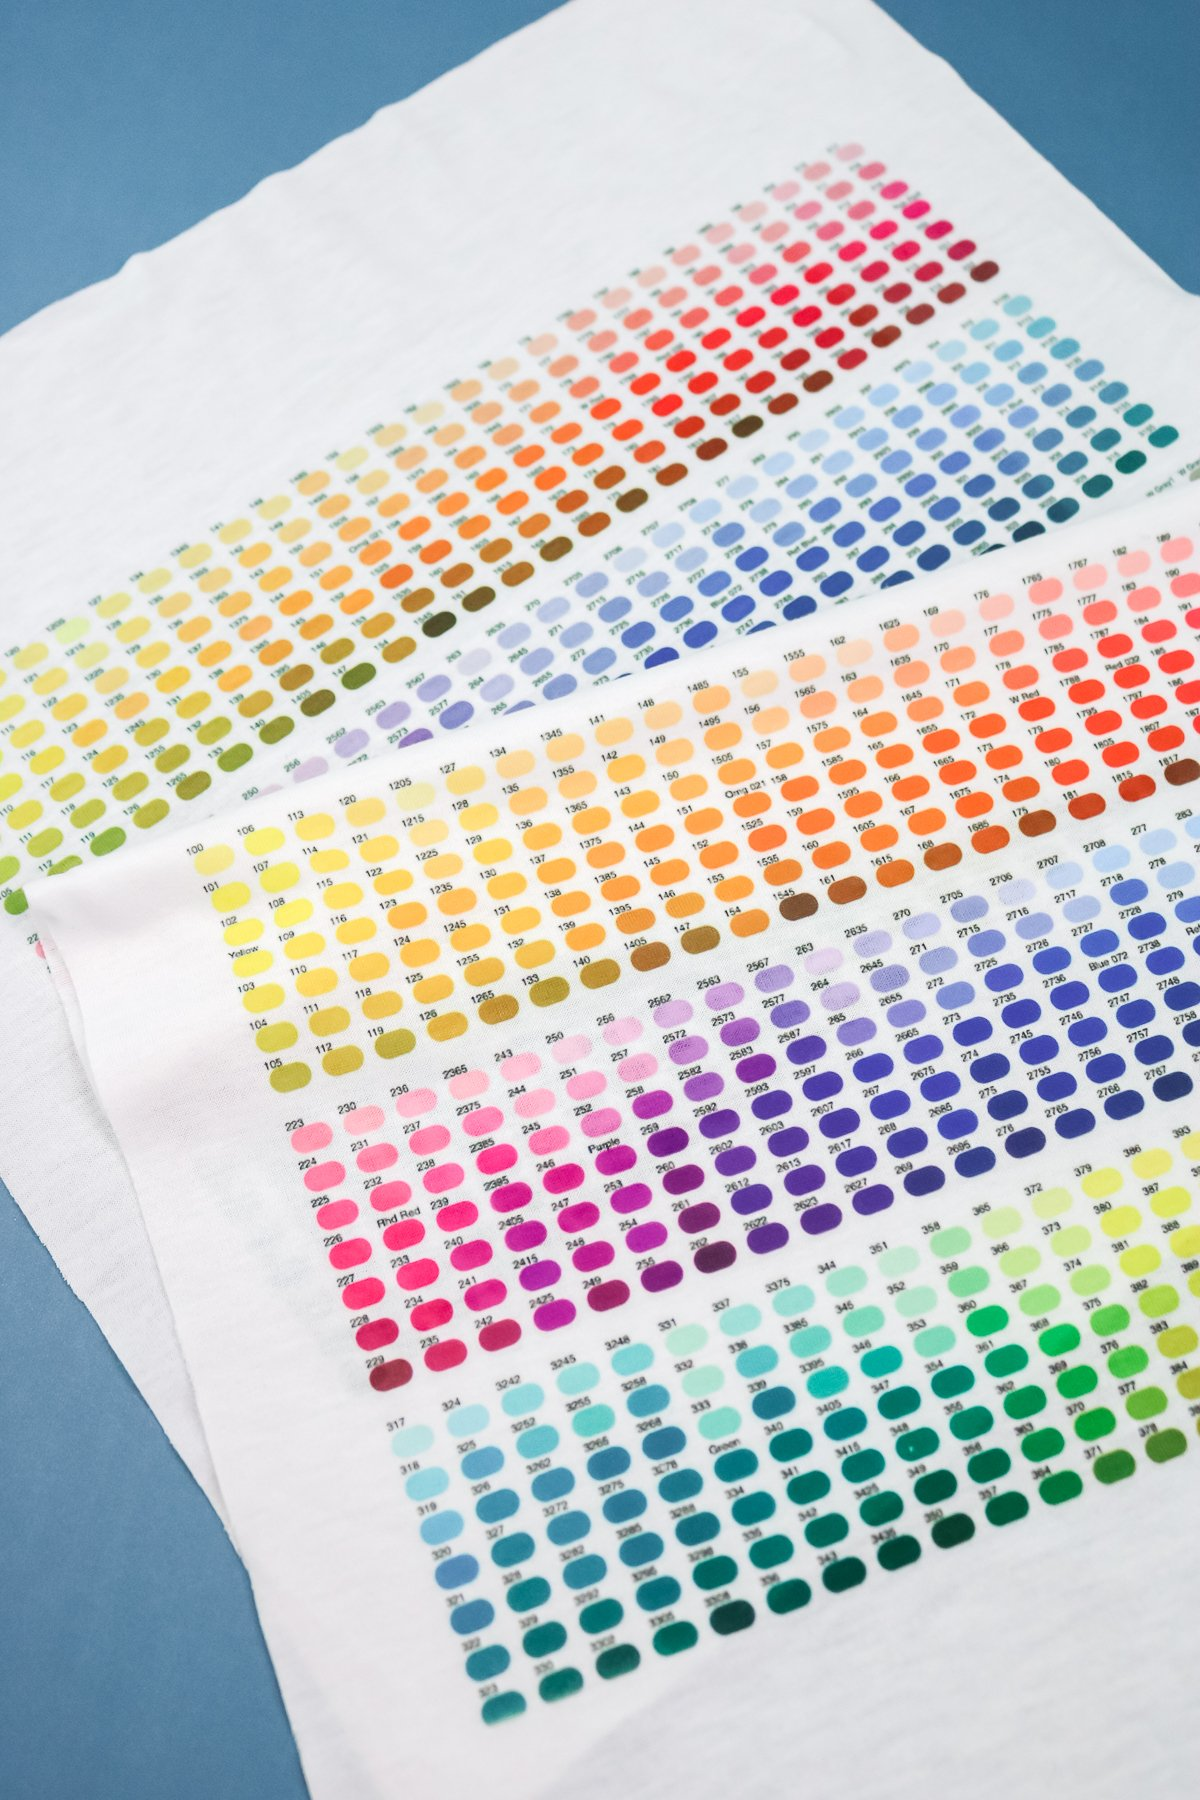 pantone color chart sublimated onto fabric